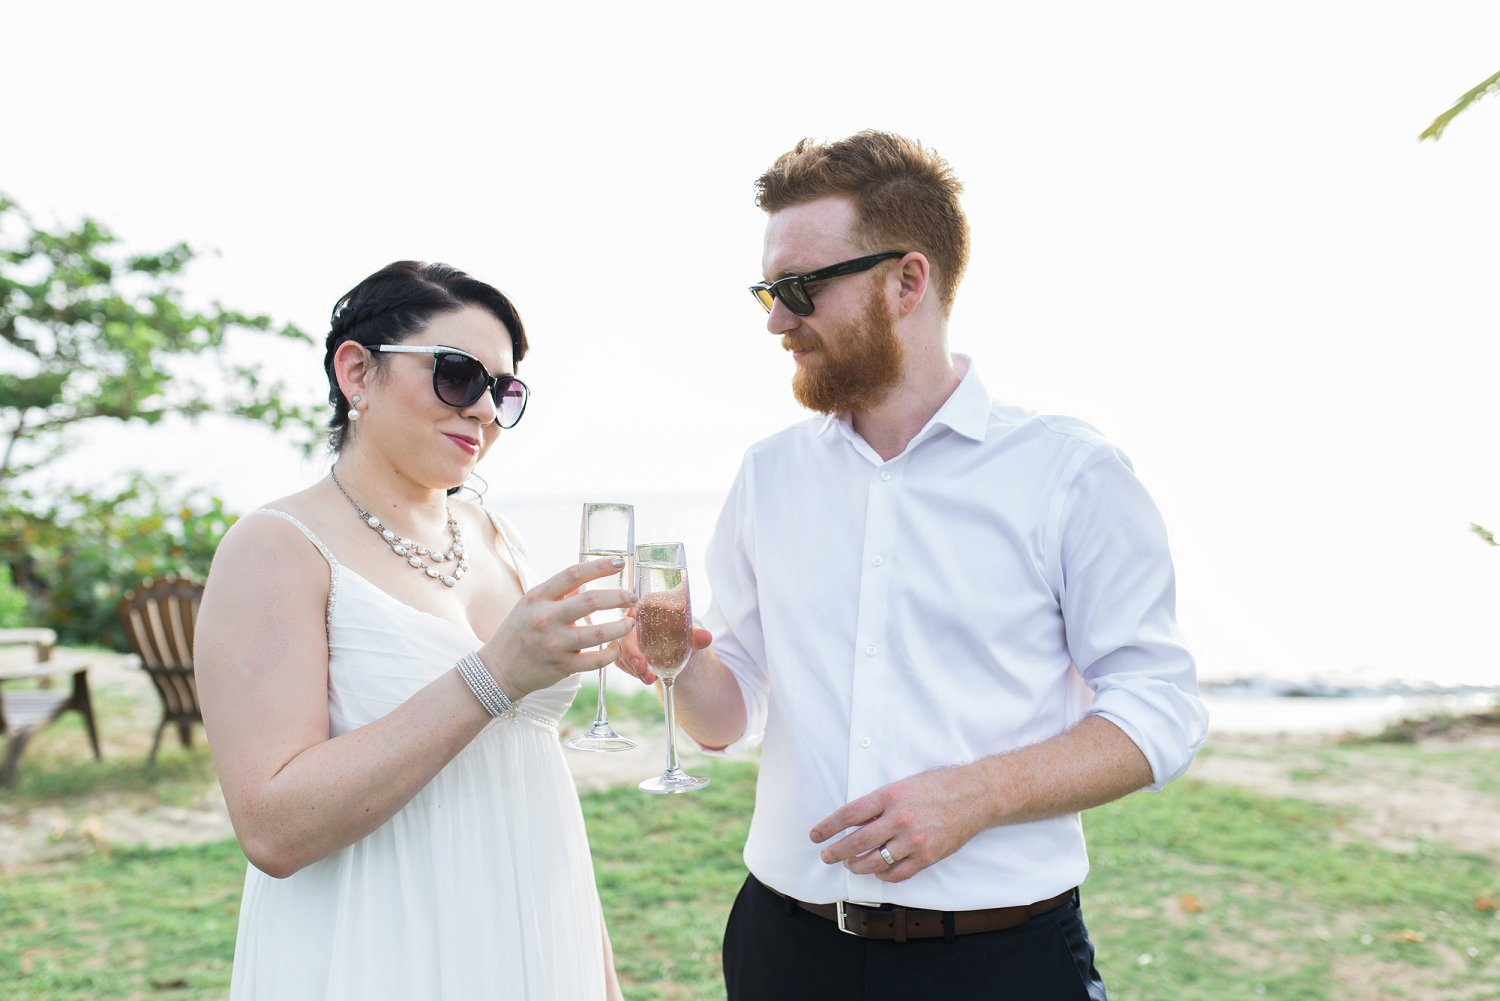 Couple toasts with champagne wearing sunglasses at beach wedding.